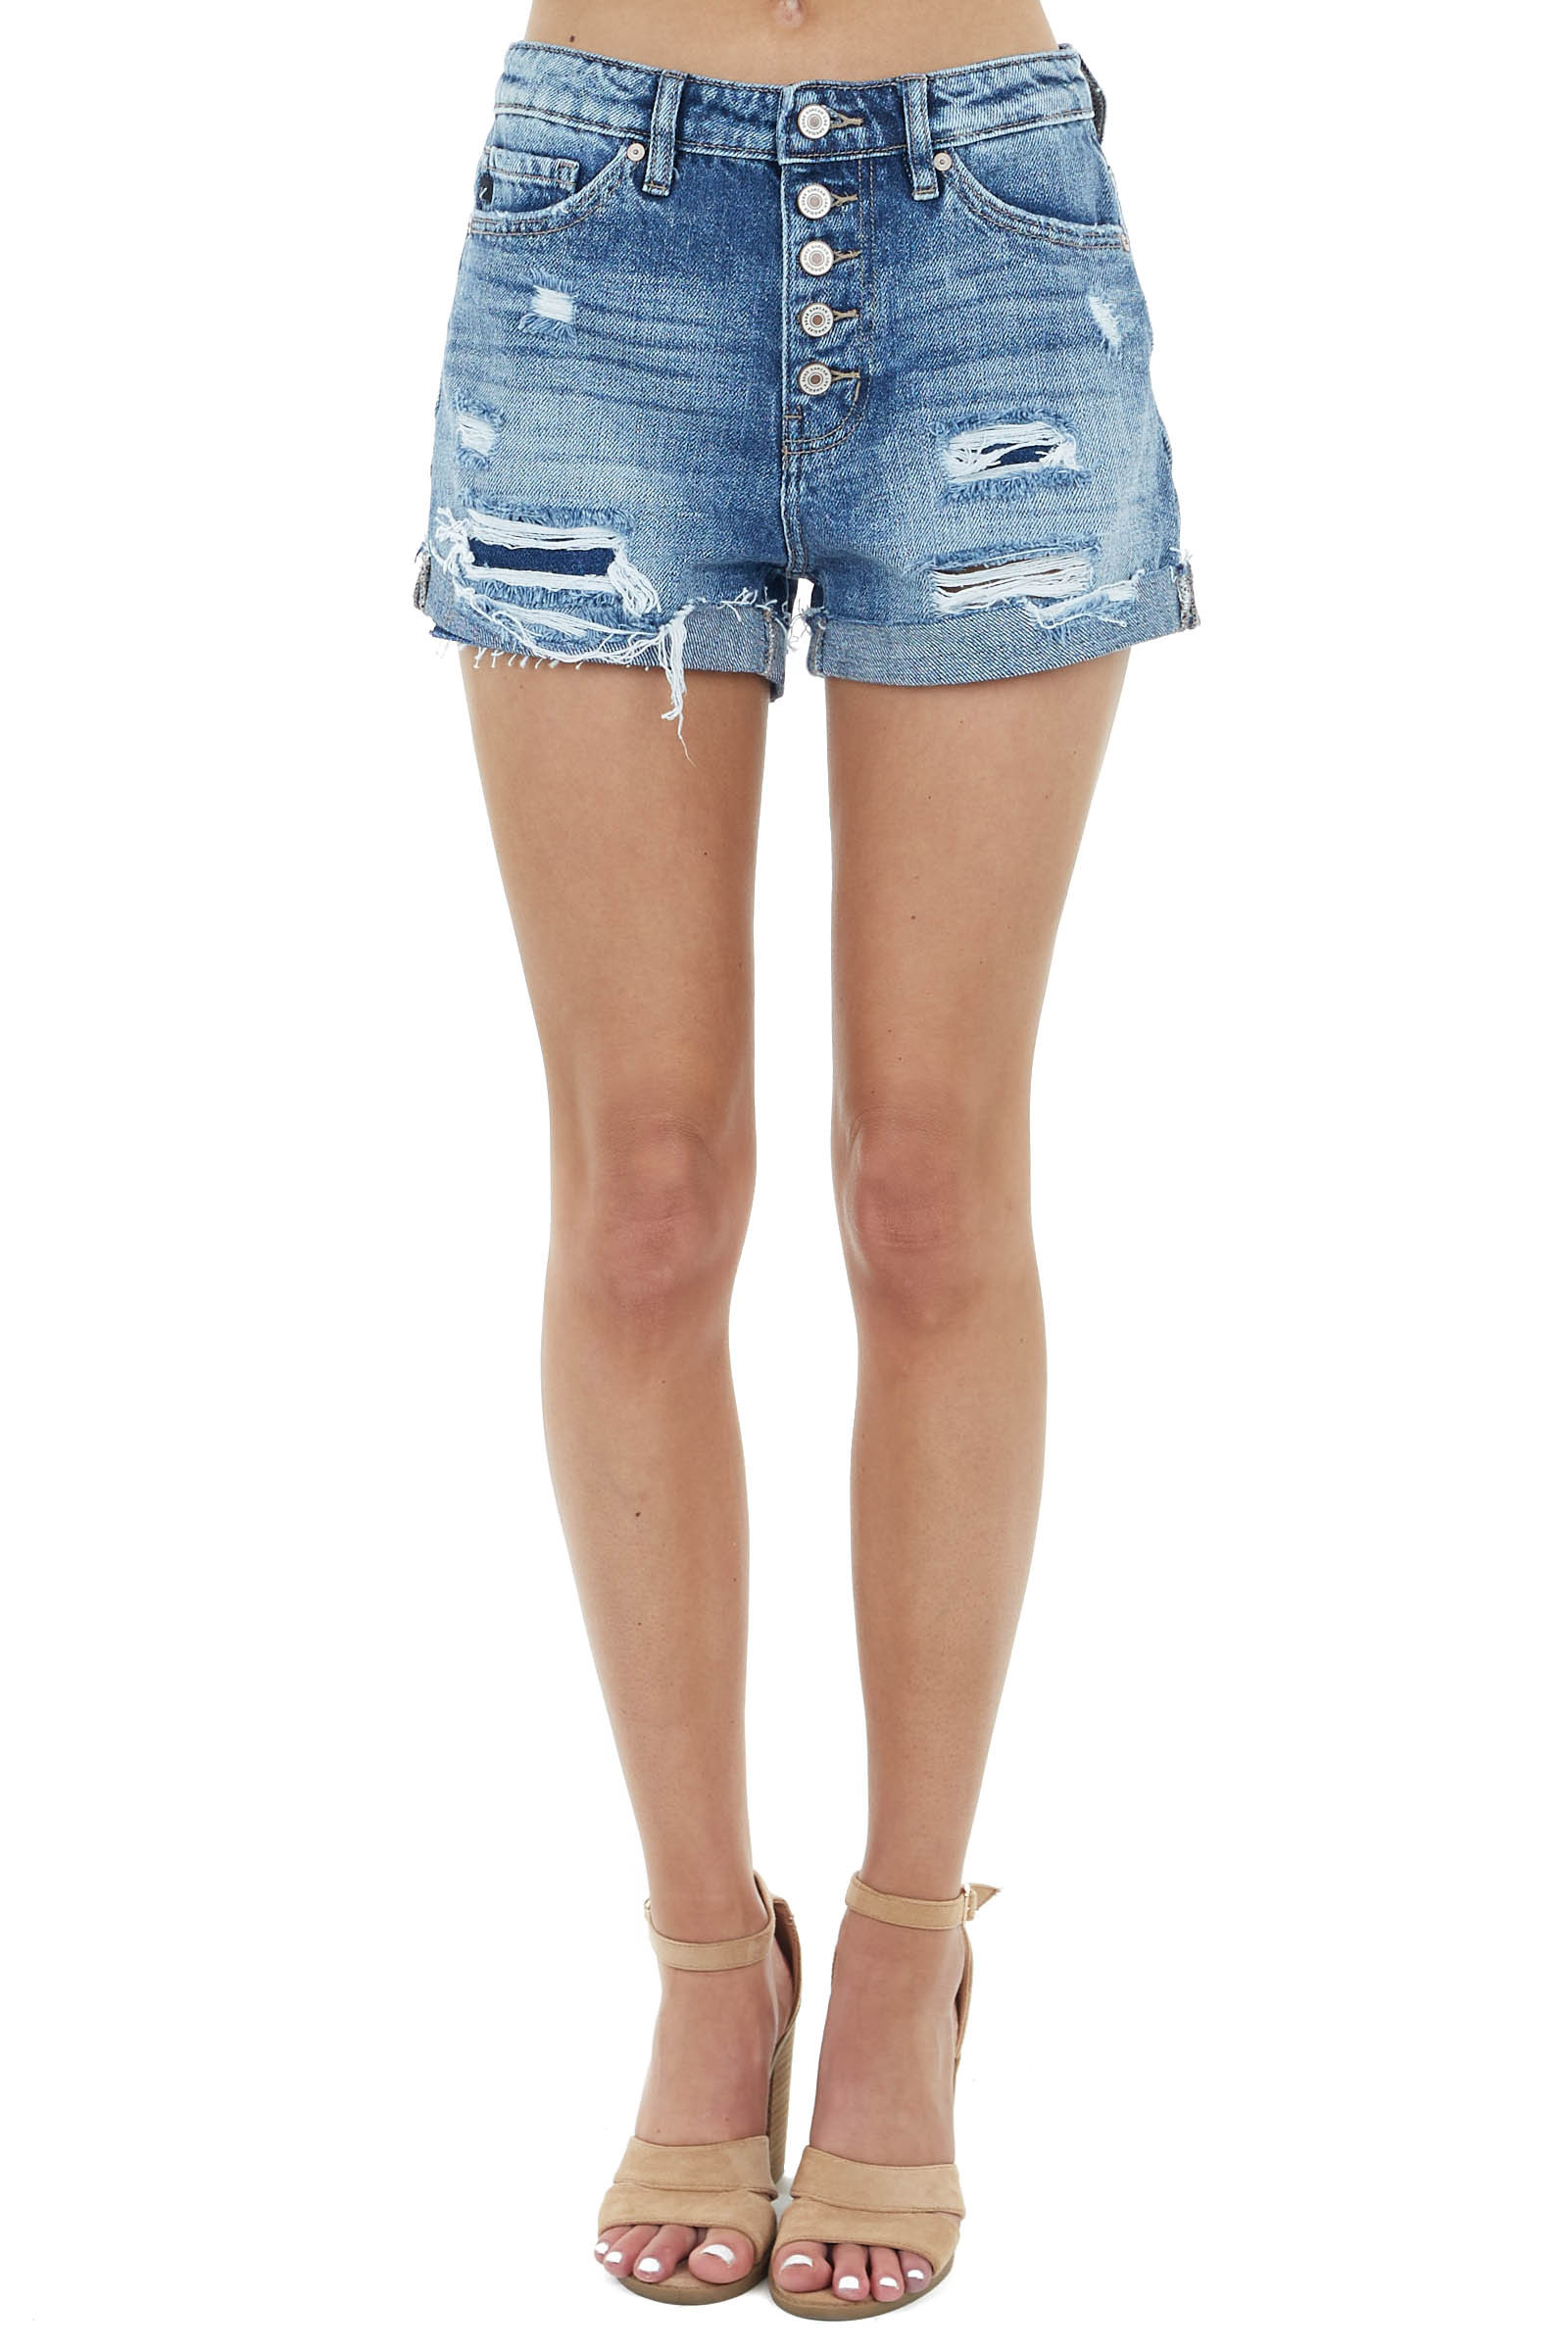 Medium Wash High Rise Distressed Shorts with Button Detail